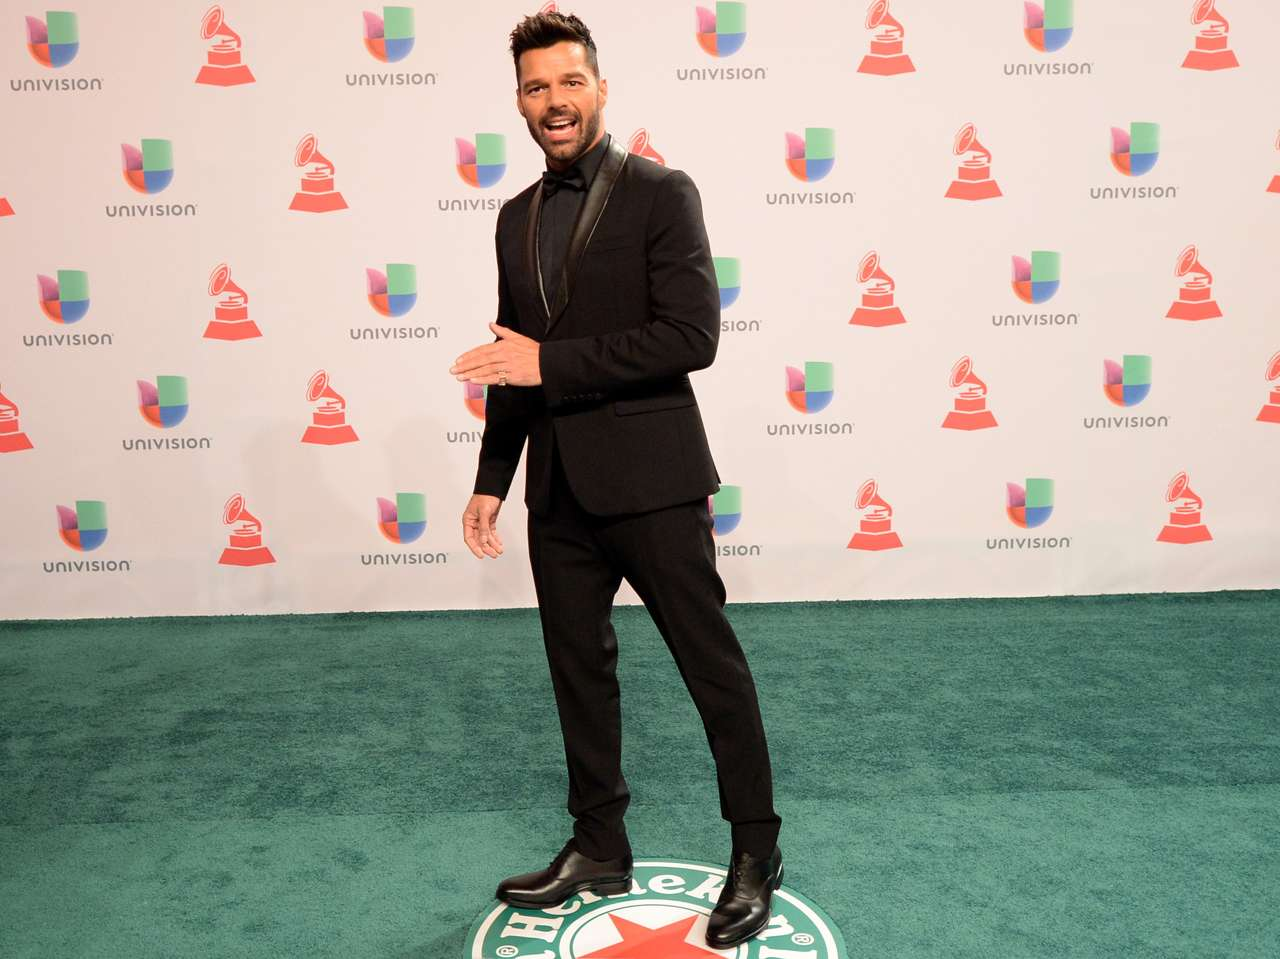 Galanes - Latin Grammy 2014: Ricky Martin. Foto: Getty Images